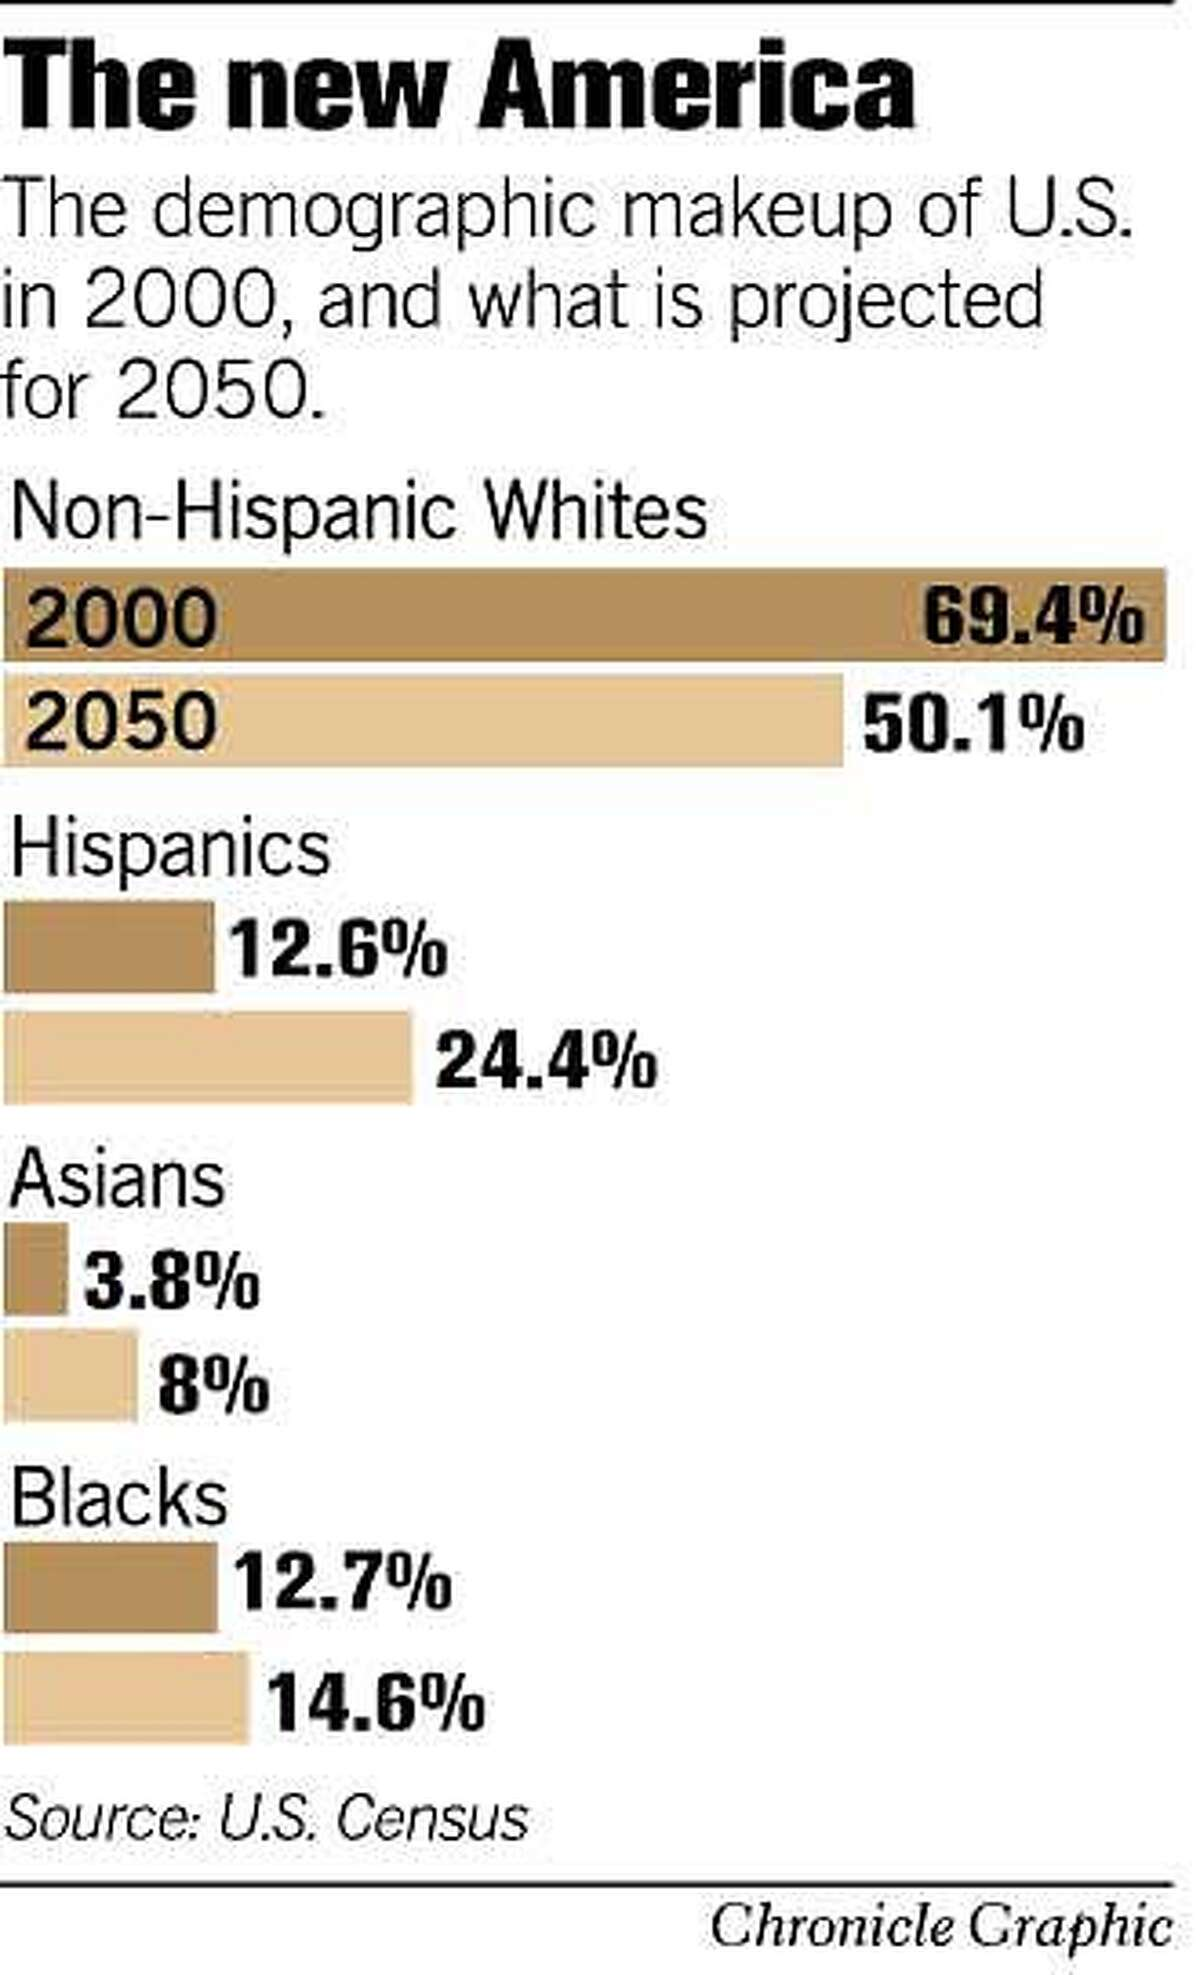 The New America. Chronicle Graphic